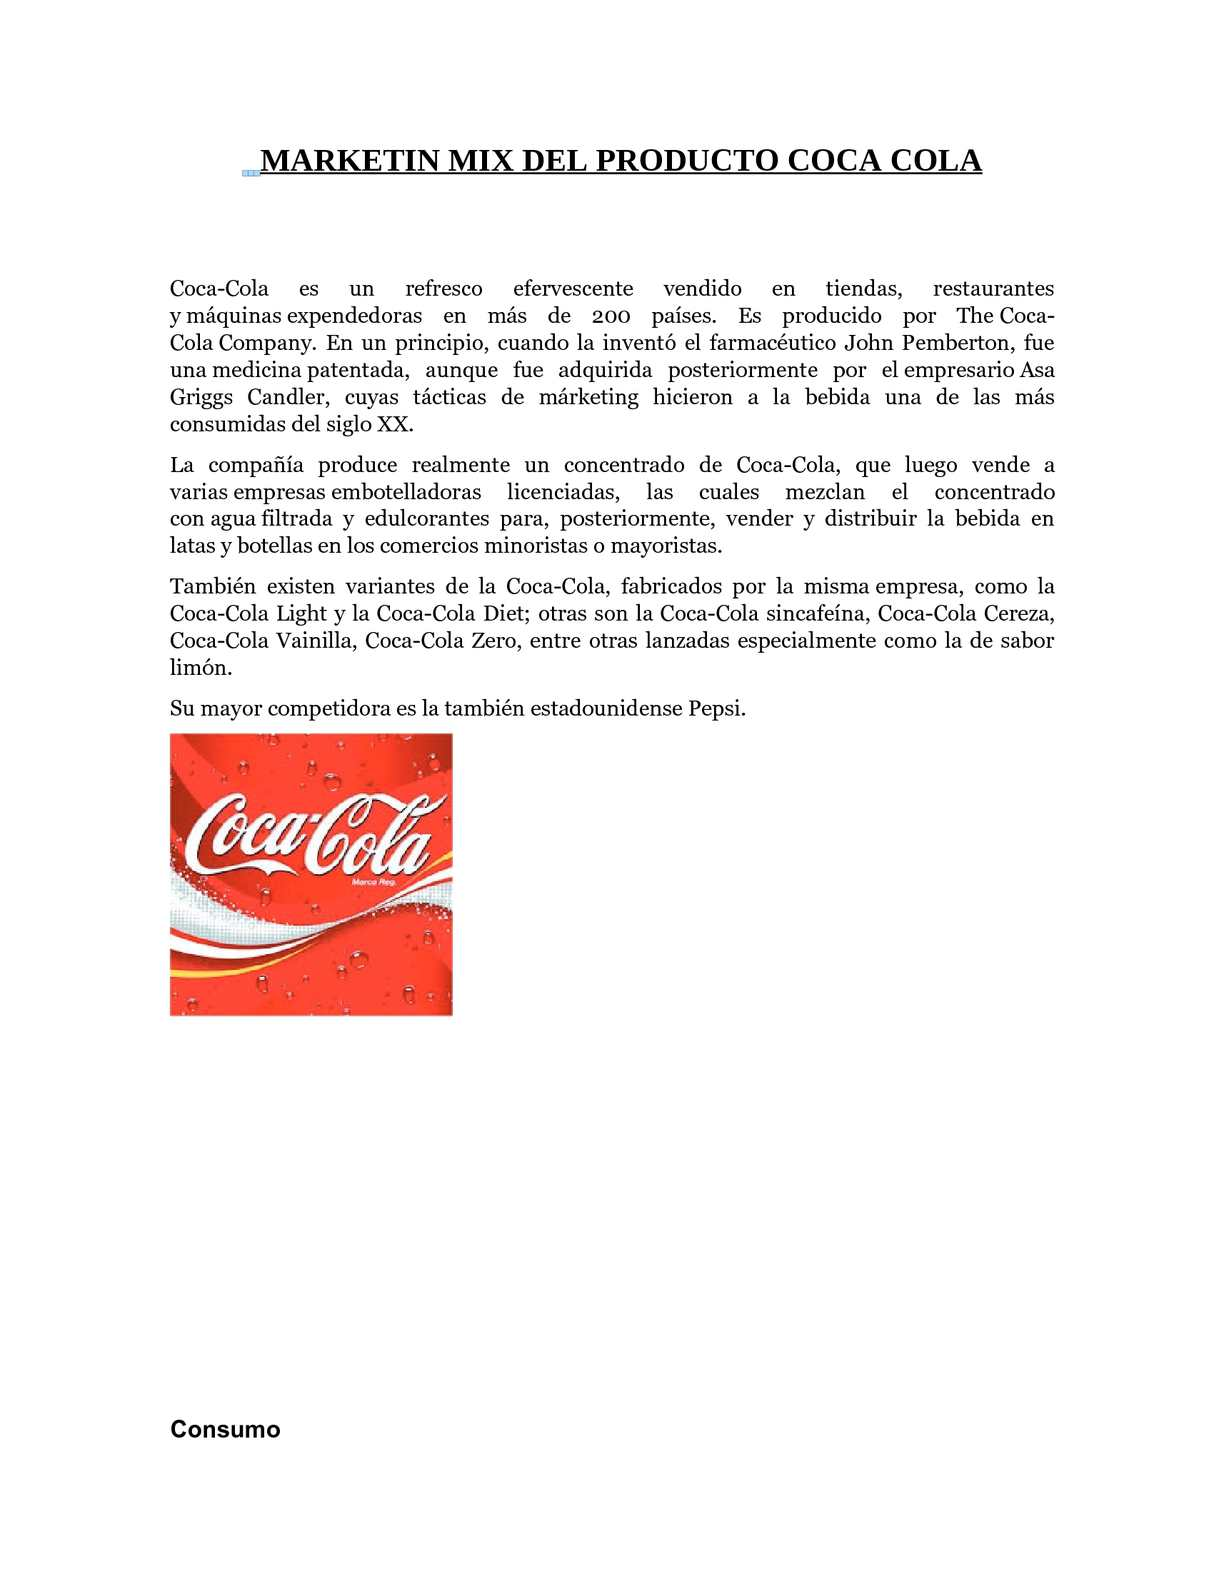 the coca cola marketing mix Question:select a current product or service with which you are familiar this product will be used to pitch a new integrated marketing communication and marketing mix to a client who is the marketer or producer of the productreview the current marketing mix including the communication channels used.